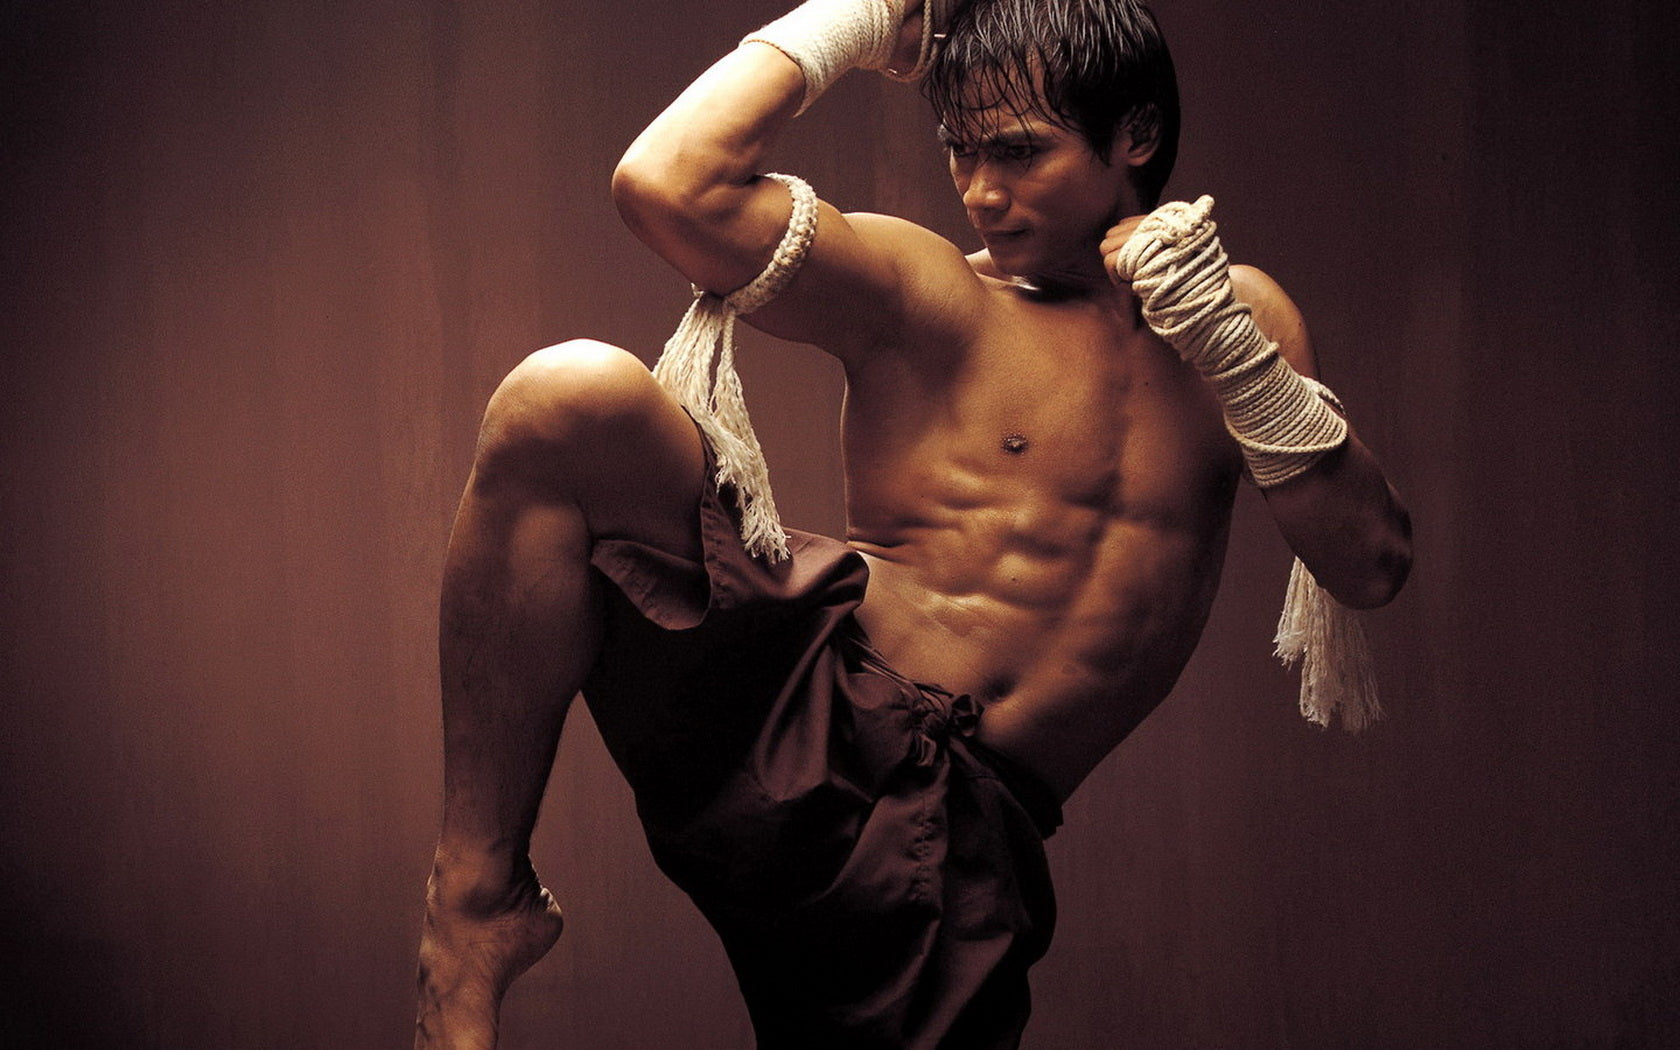 This Form Of Combat Then Found Its Way Into North America Where American Kickboxing Was Formed In The 1970s